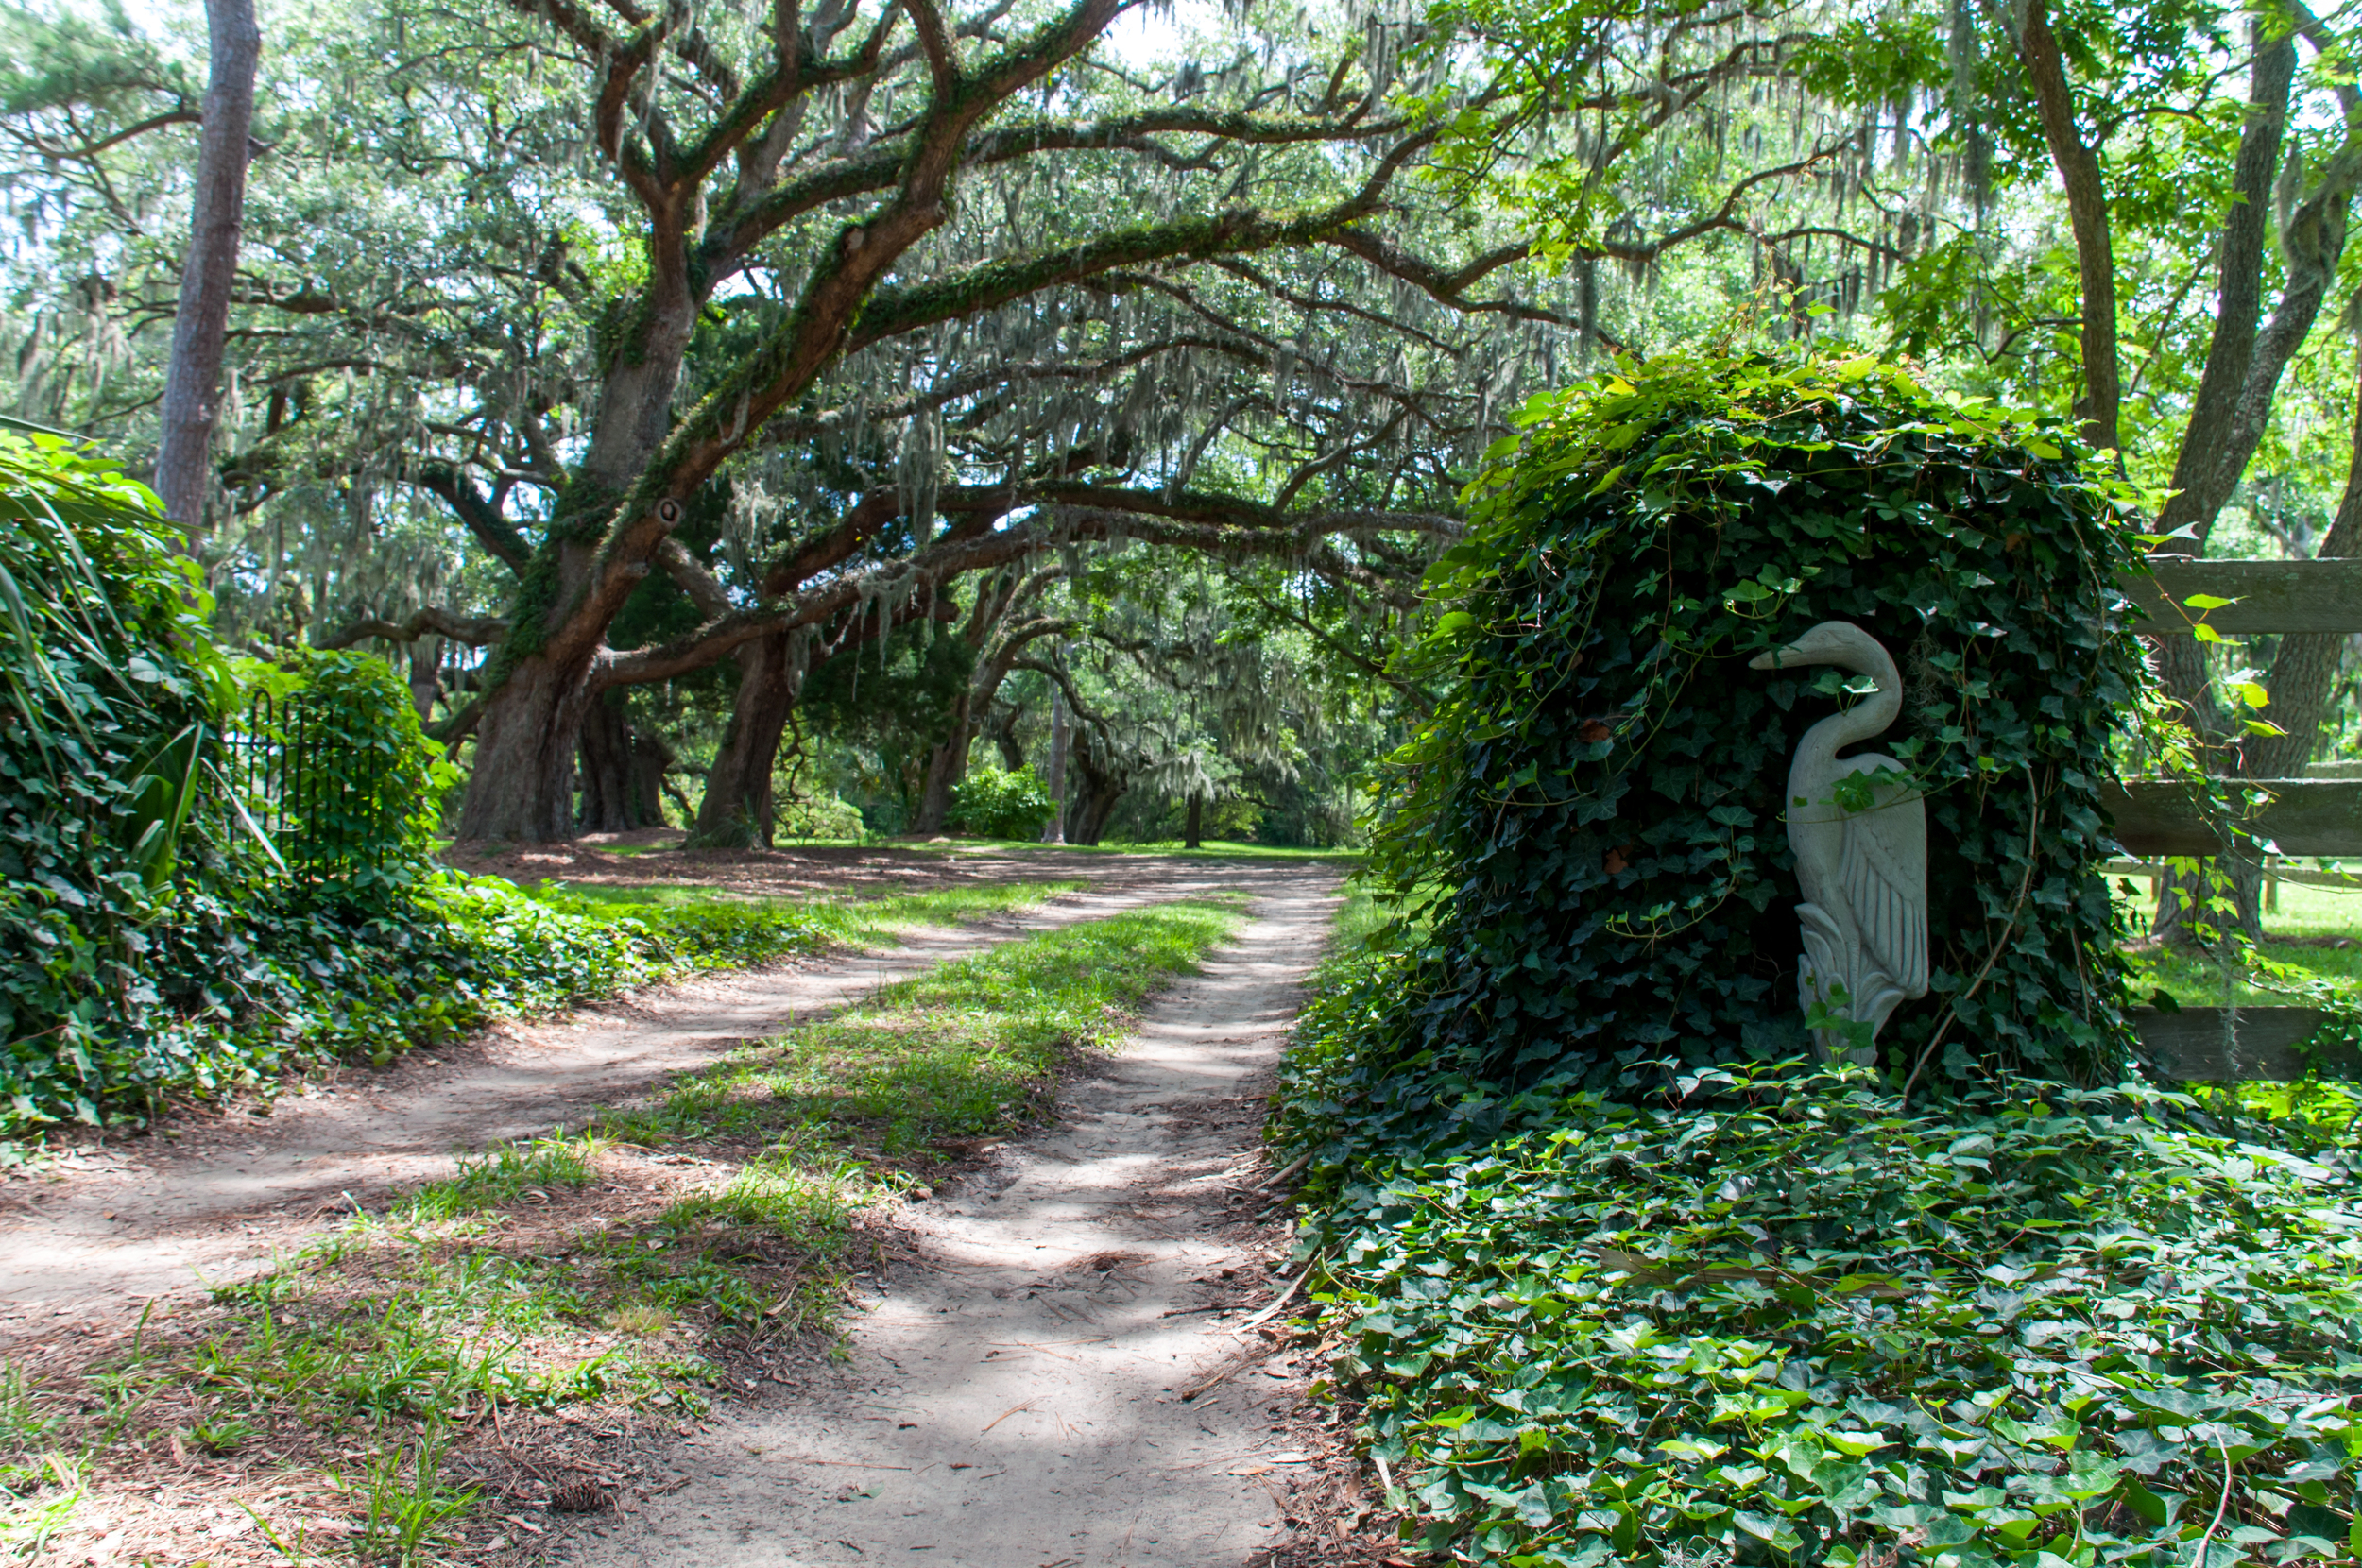 Ivy surrounds a statue of a poised egret lining the entrance to Cassina Point.